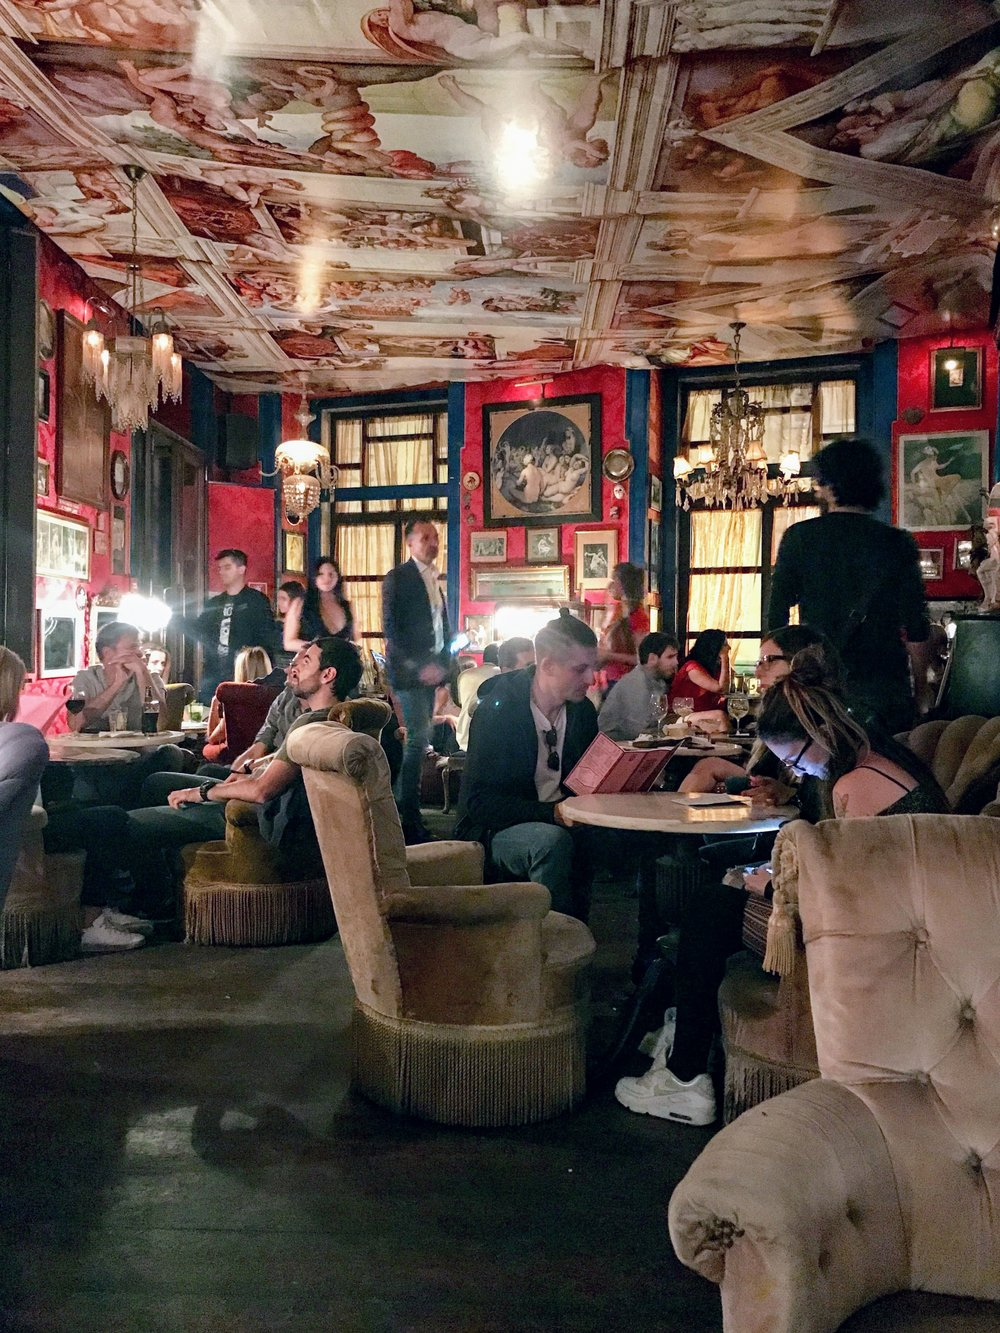 In my first Lisbon post, I said you must visit the bar  Penso Amor . Look at how cool this place is! There are a few surprises inside. I won't ruin them for you, you'll have to experience them for yourself.